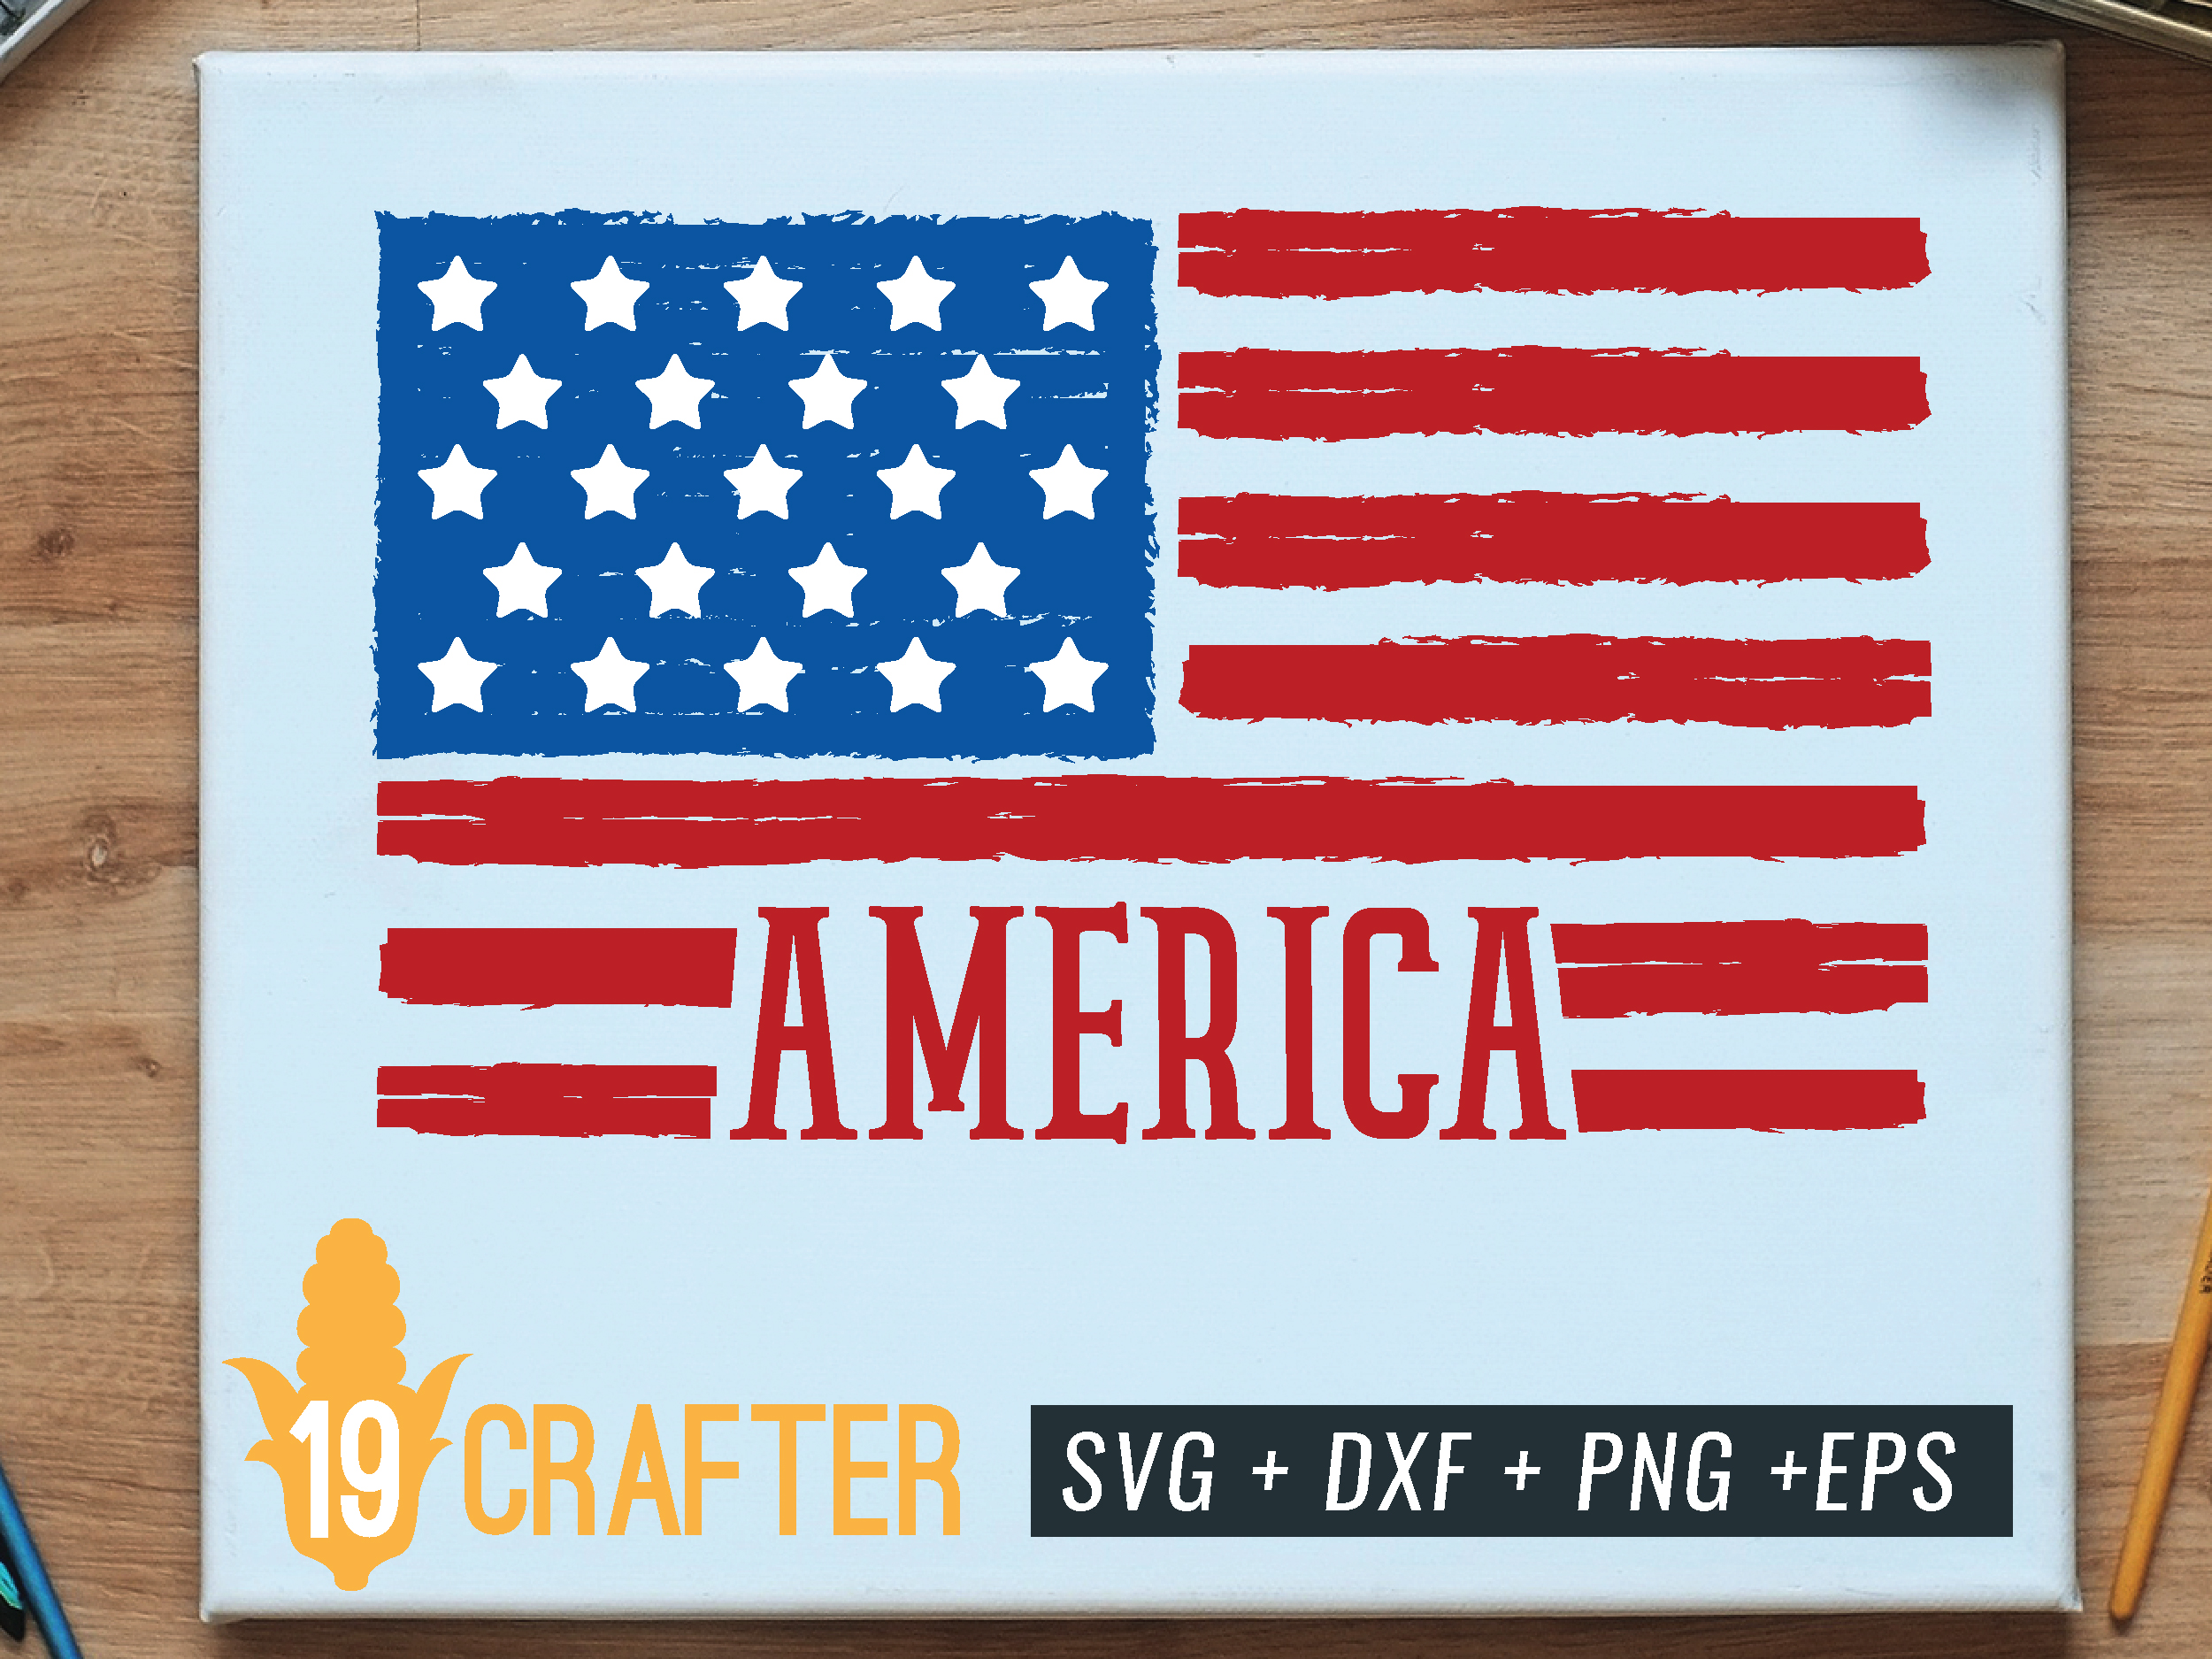 Download Free Distressed American Flag Graphic By Great19 Creative Fabrica for Cricut Explore, Silhouette and other cutting machines.